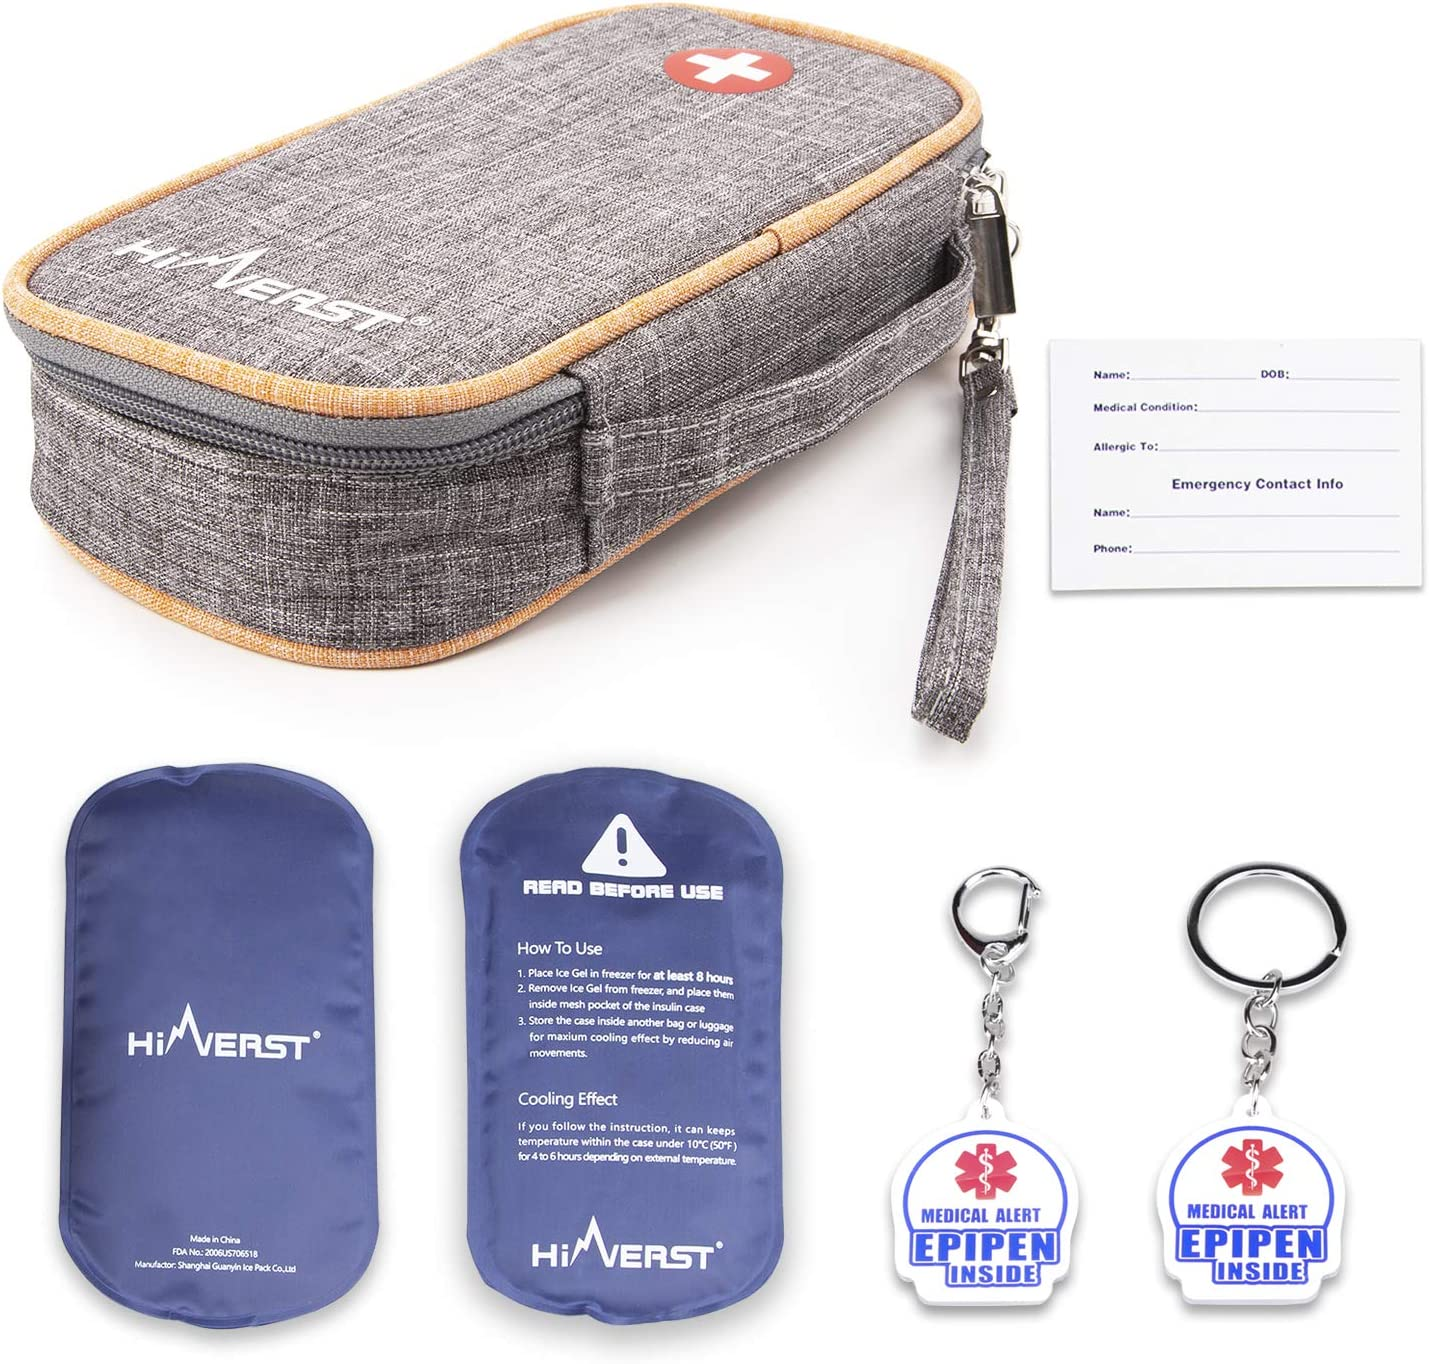 Aylesbury floral oilcloth. Insulated diabetic supply bag EpiPen case insulated medical travel bag,insulated snack pouch